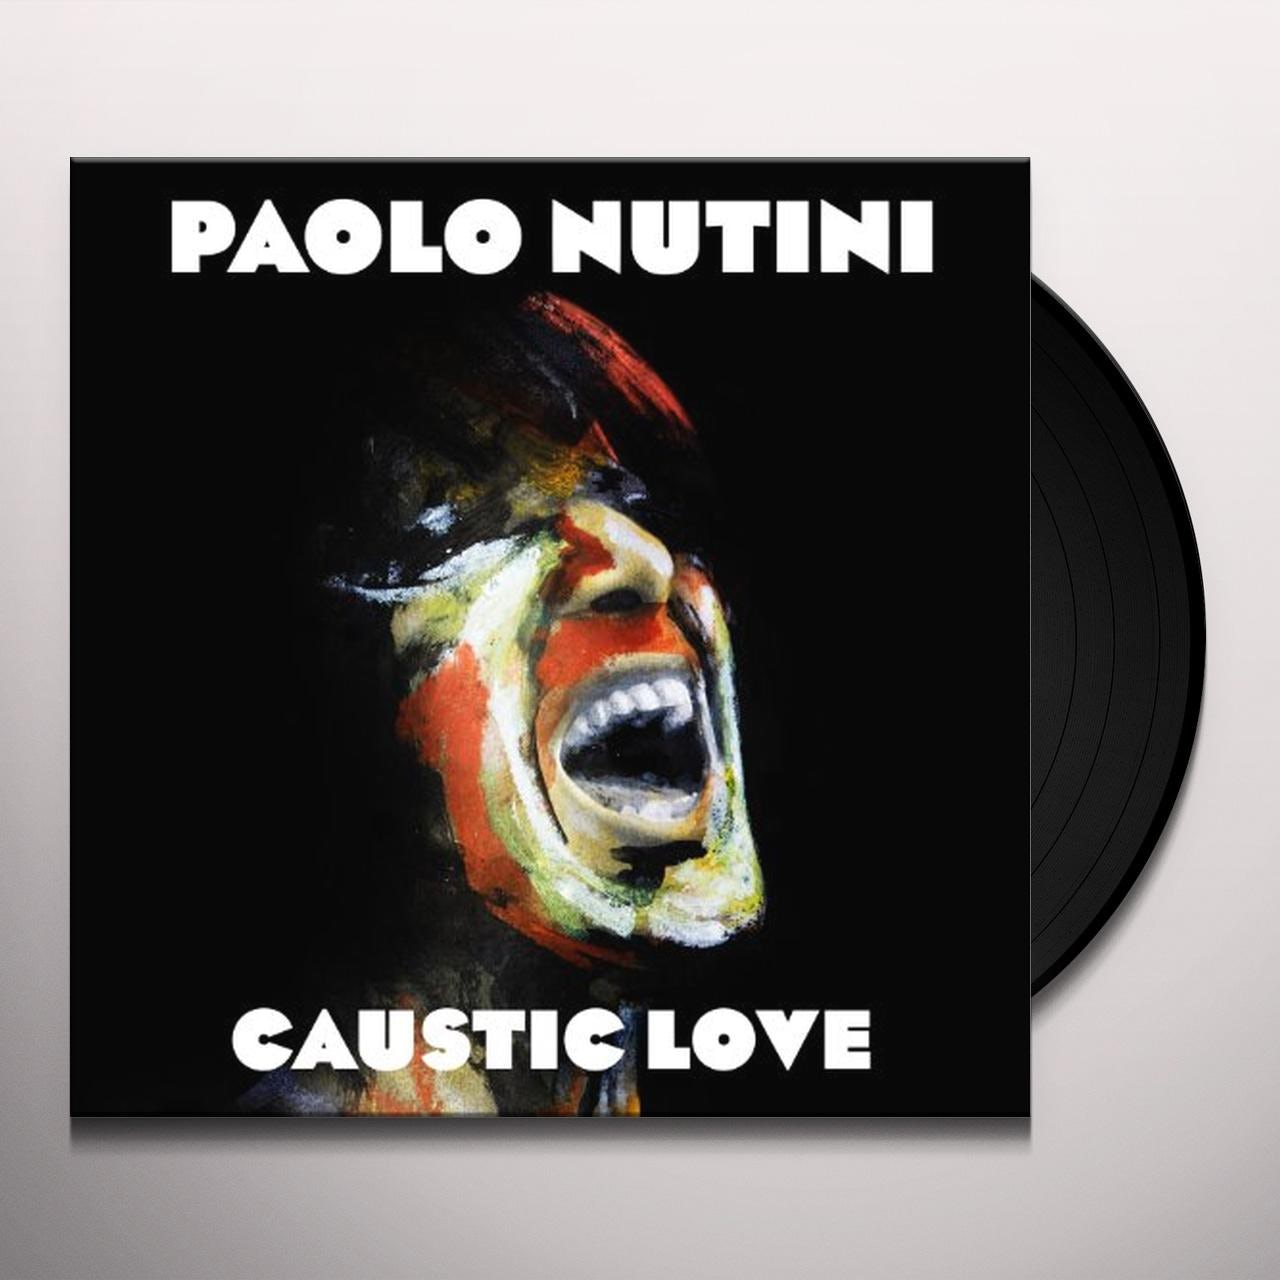 Paolo Nutini - Caustic Love (2LP)